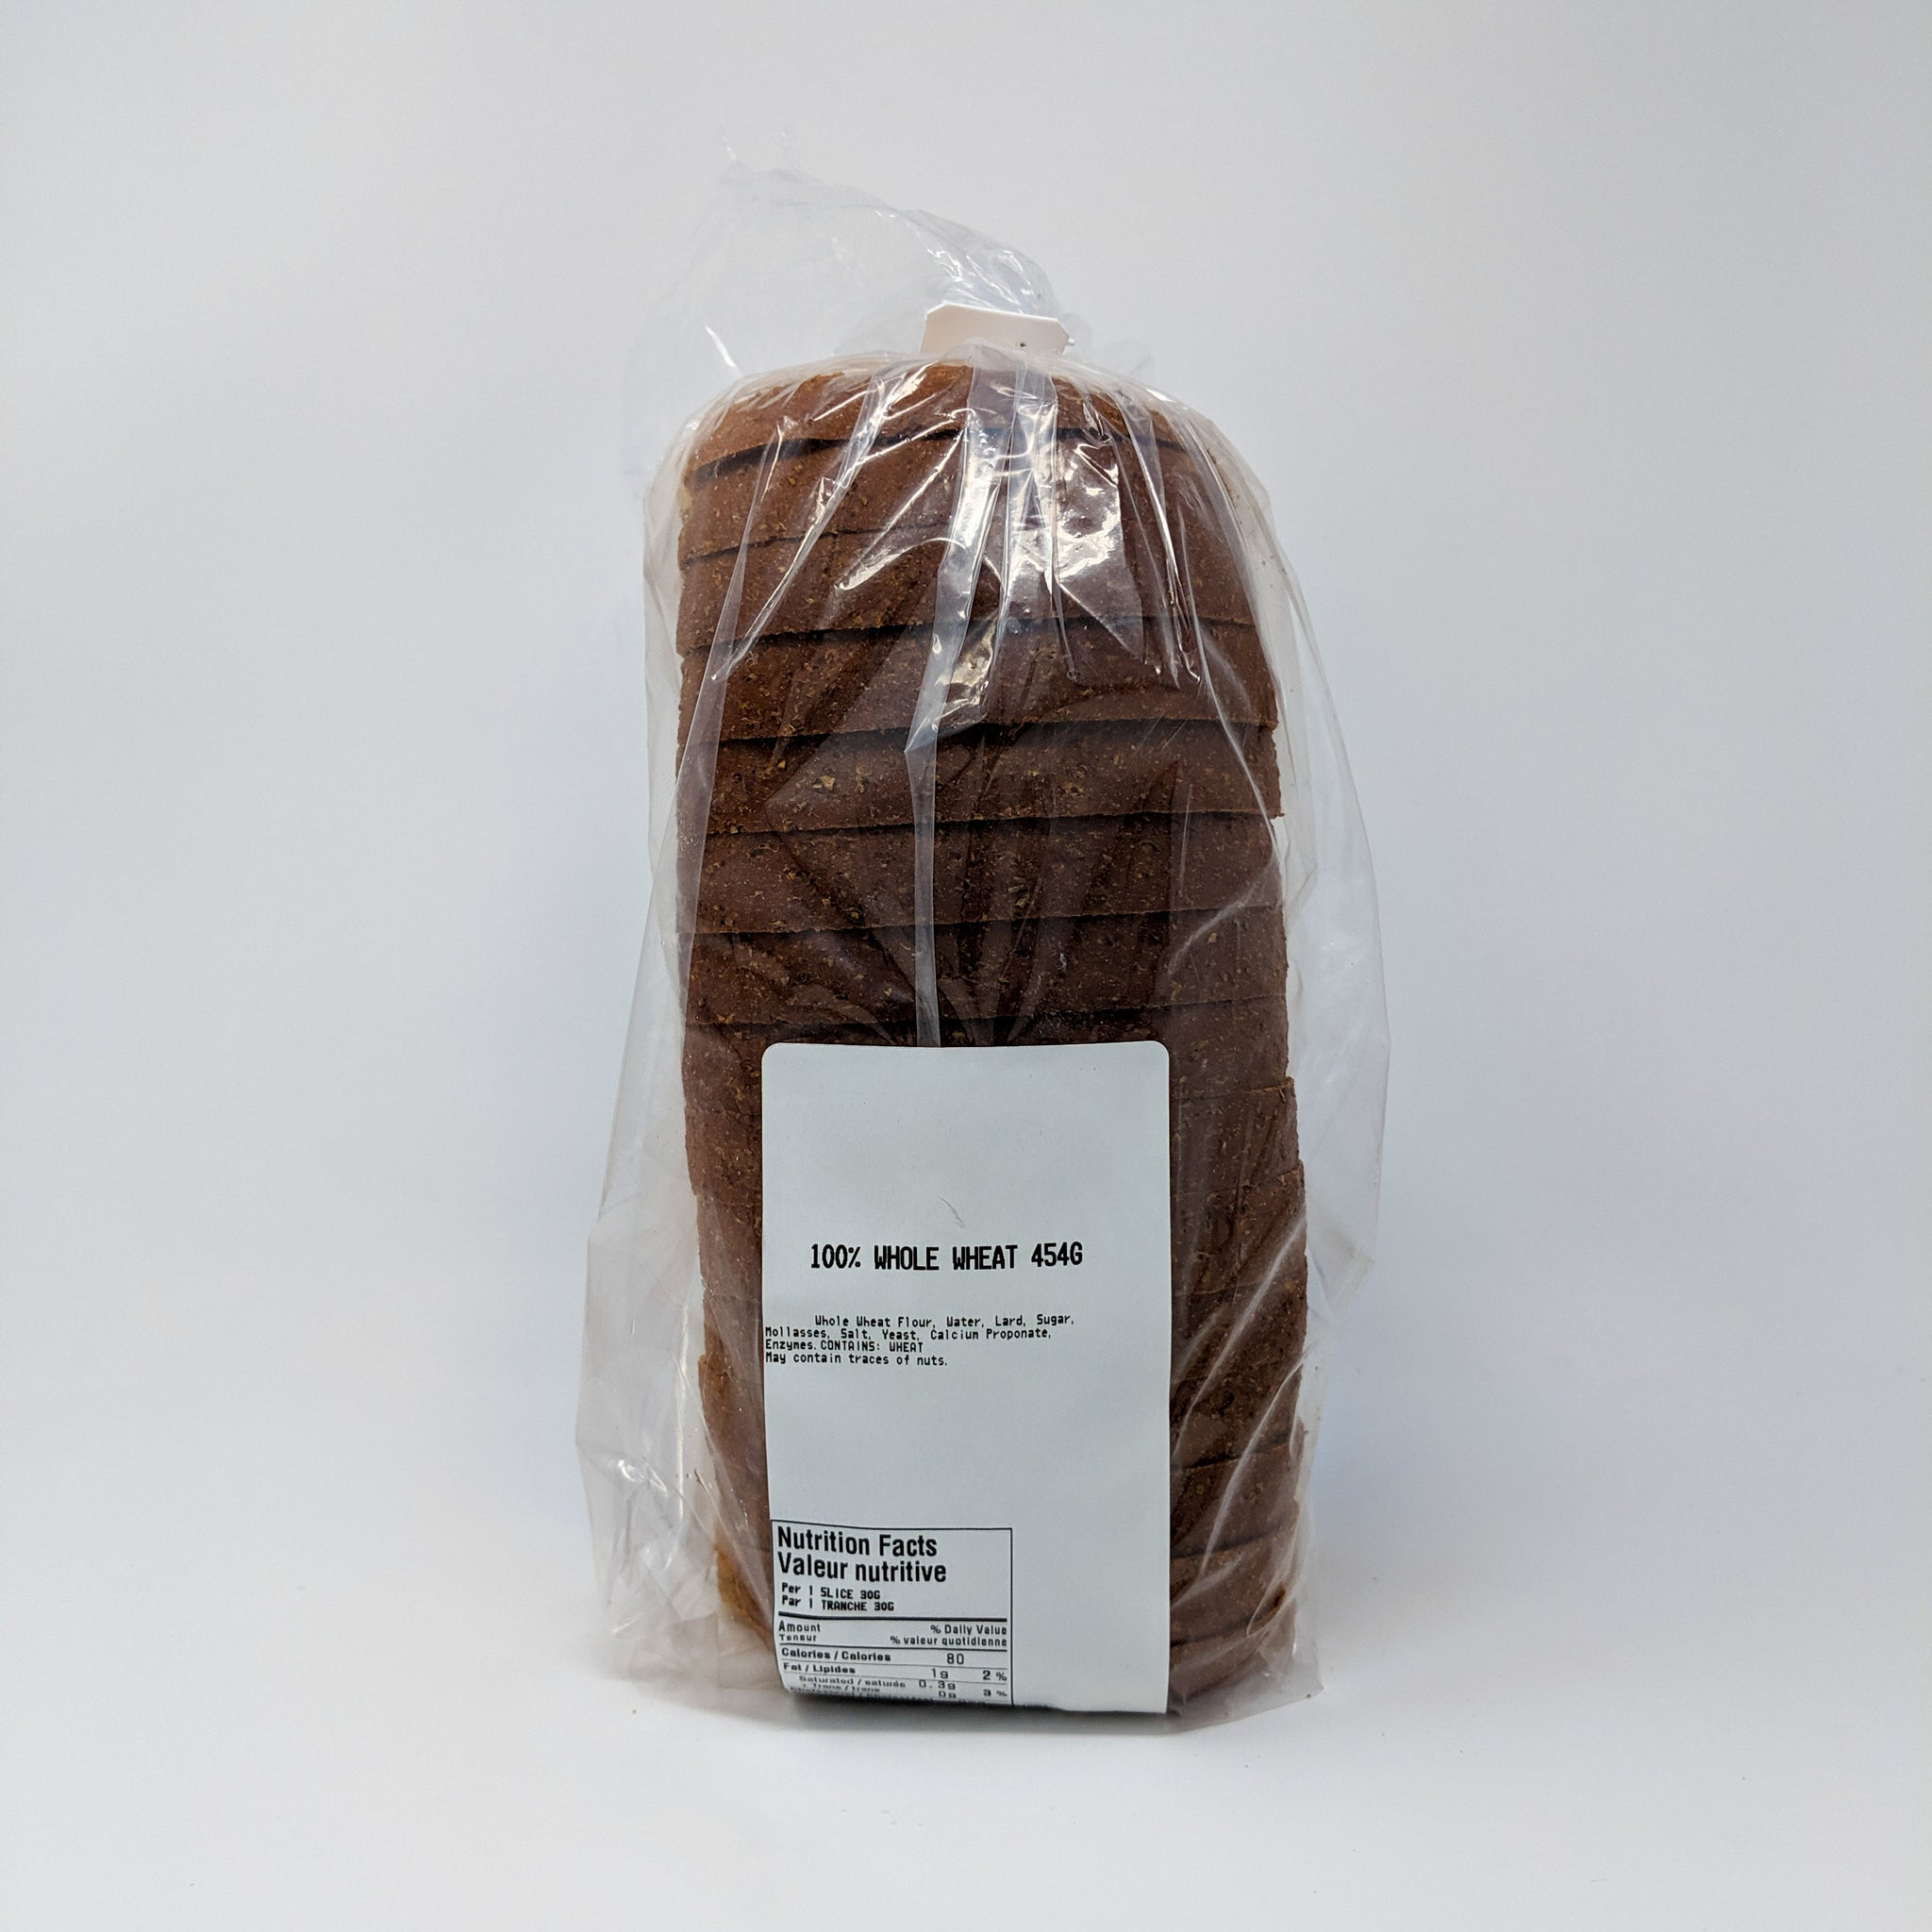 100% Whole Wheat Bread (454g) - St-Pierre